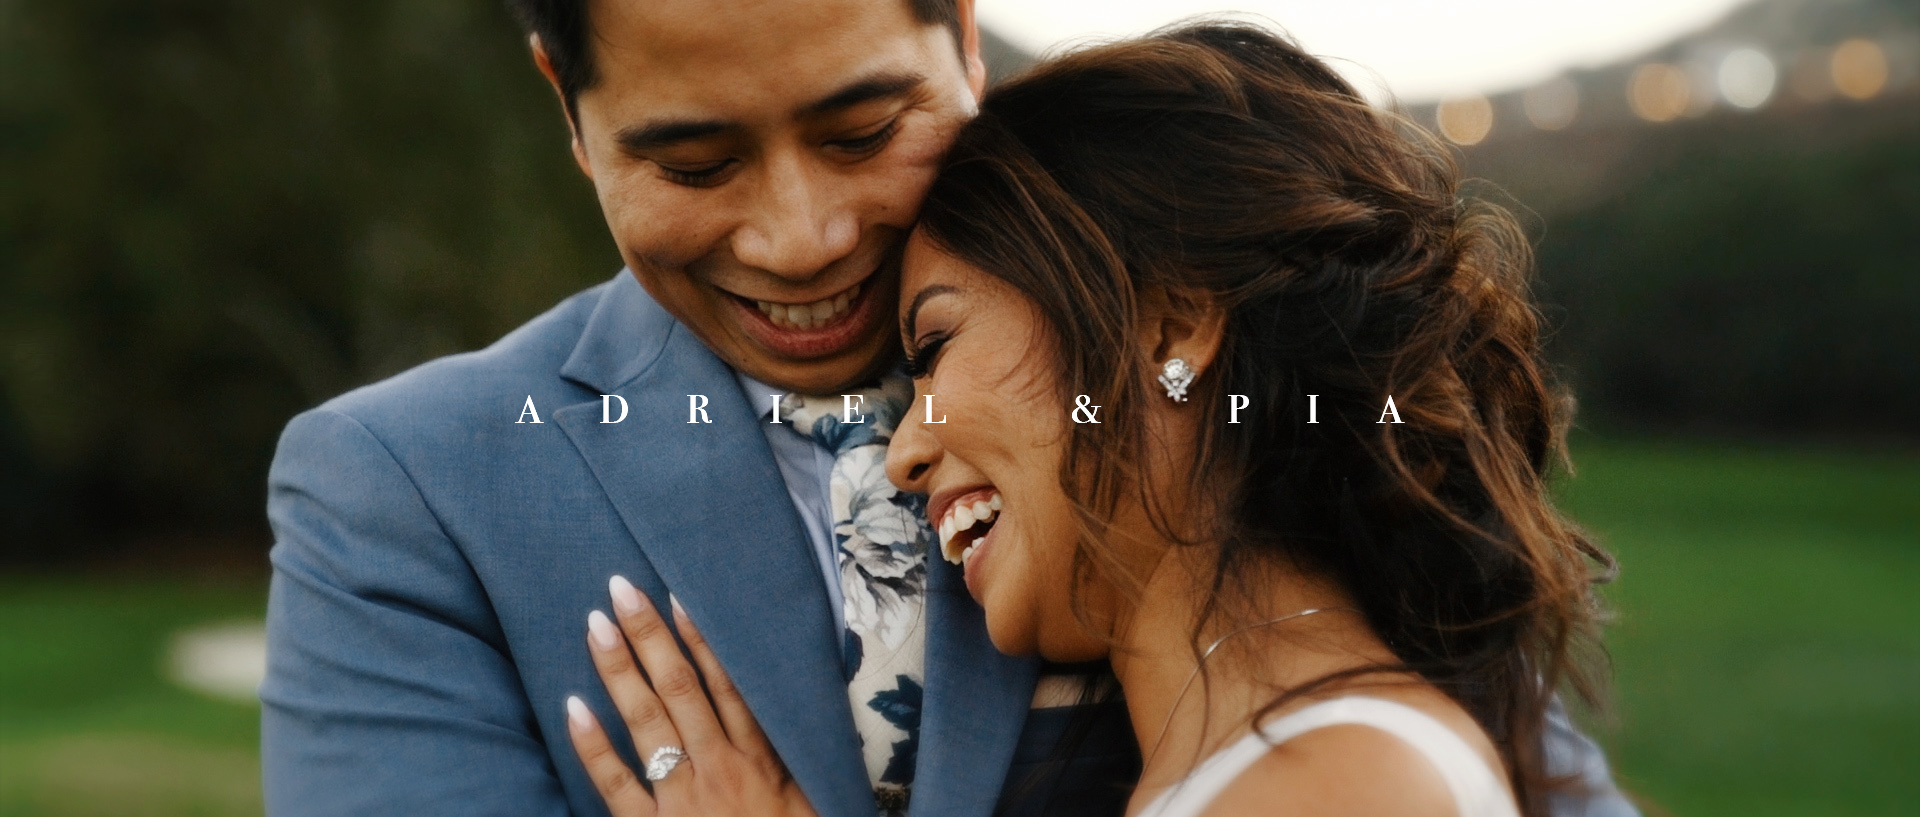 Pia + Adriel | Temecula, California | Temecula Creek Inn